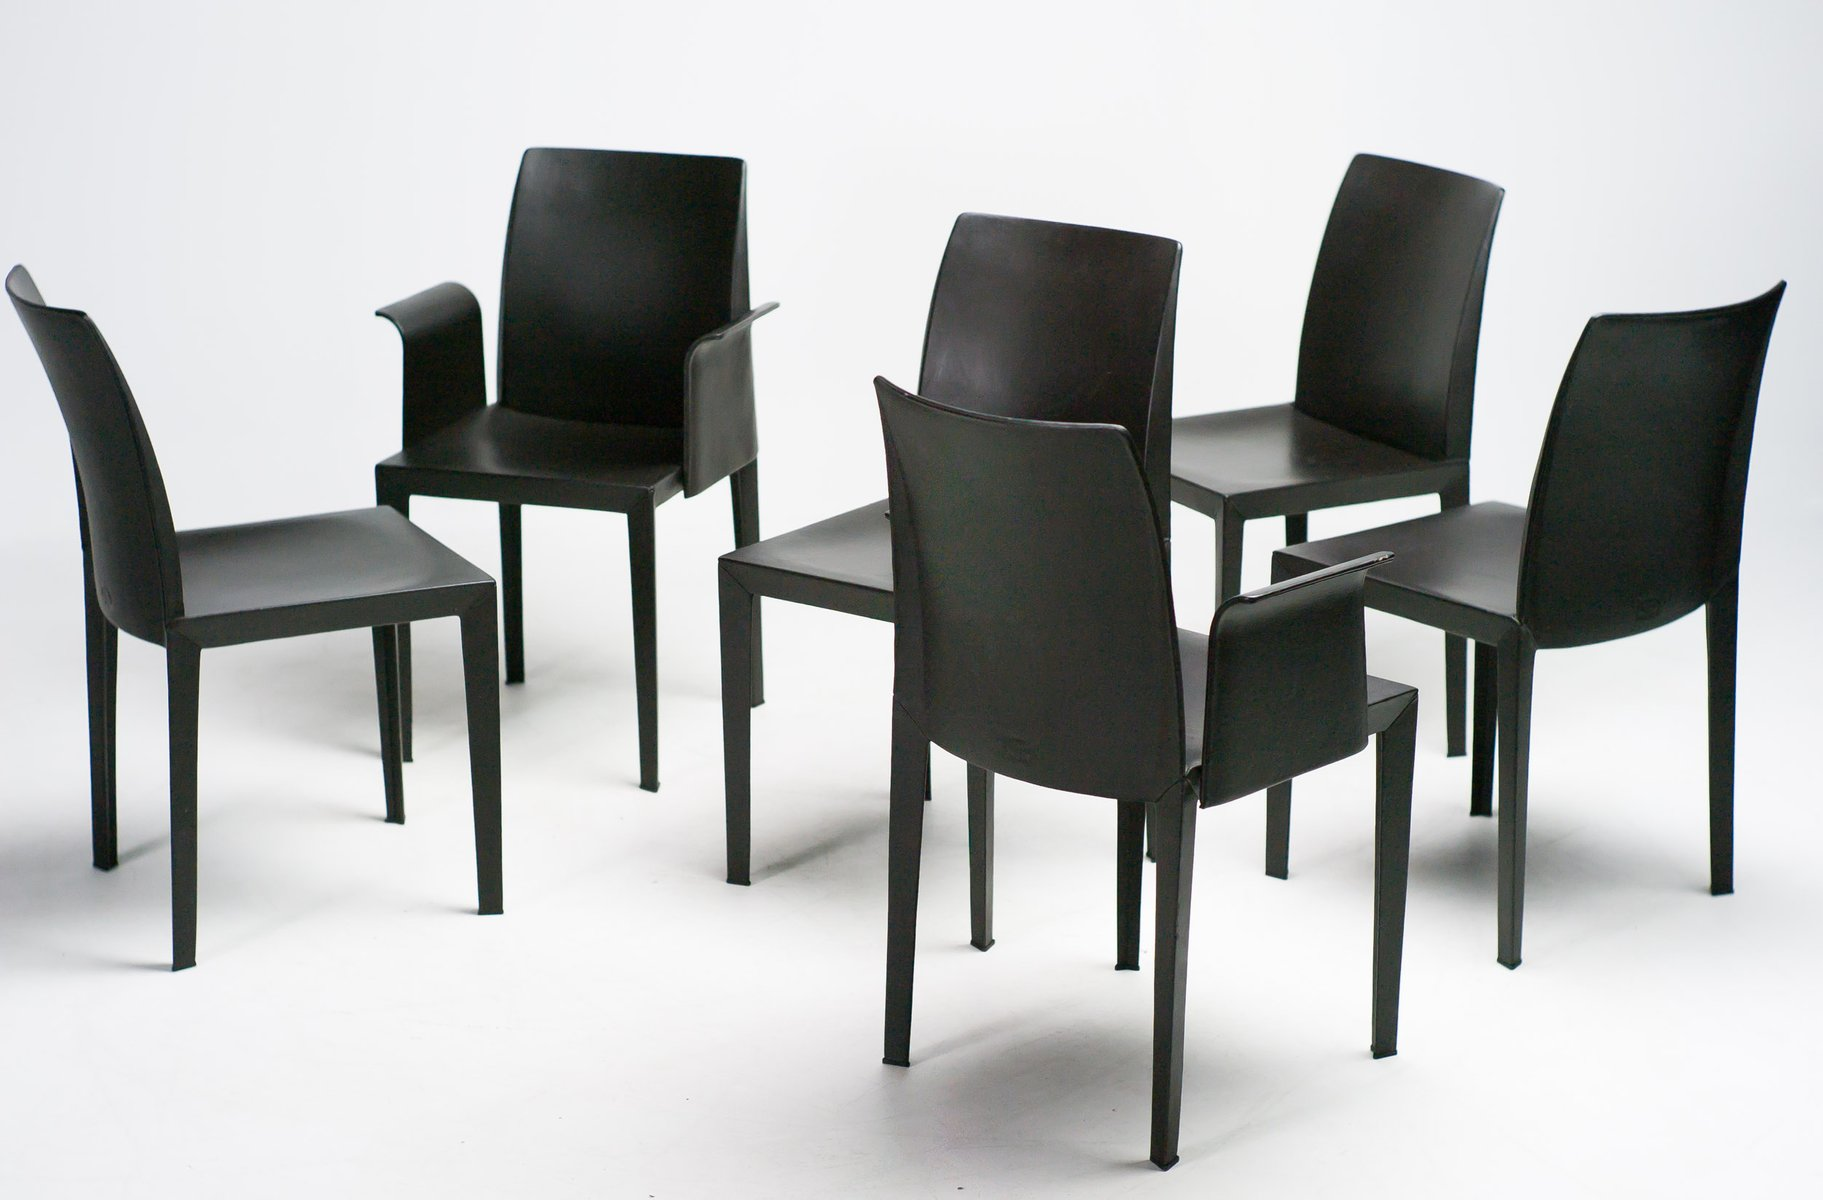 lola dining chairs by luigi cerri for poltrona frau set of 6 for sale at pamono. Black Bedroom Furniture Sets. Home Design Ideas